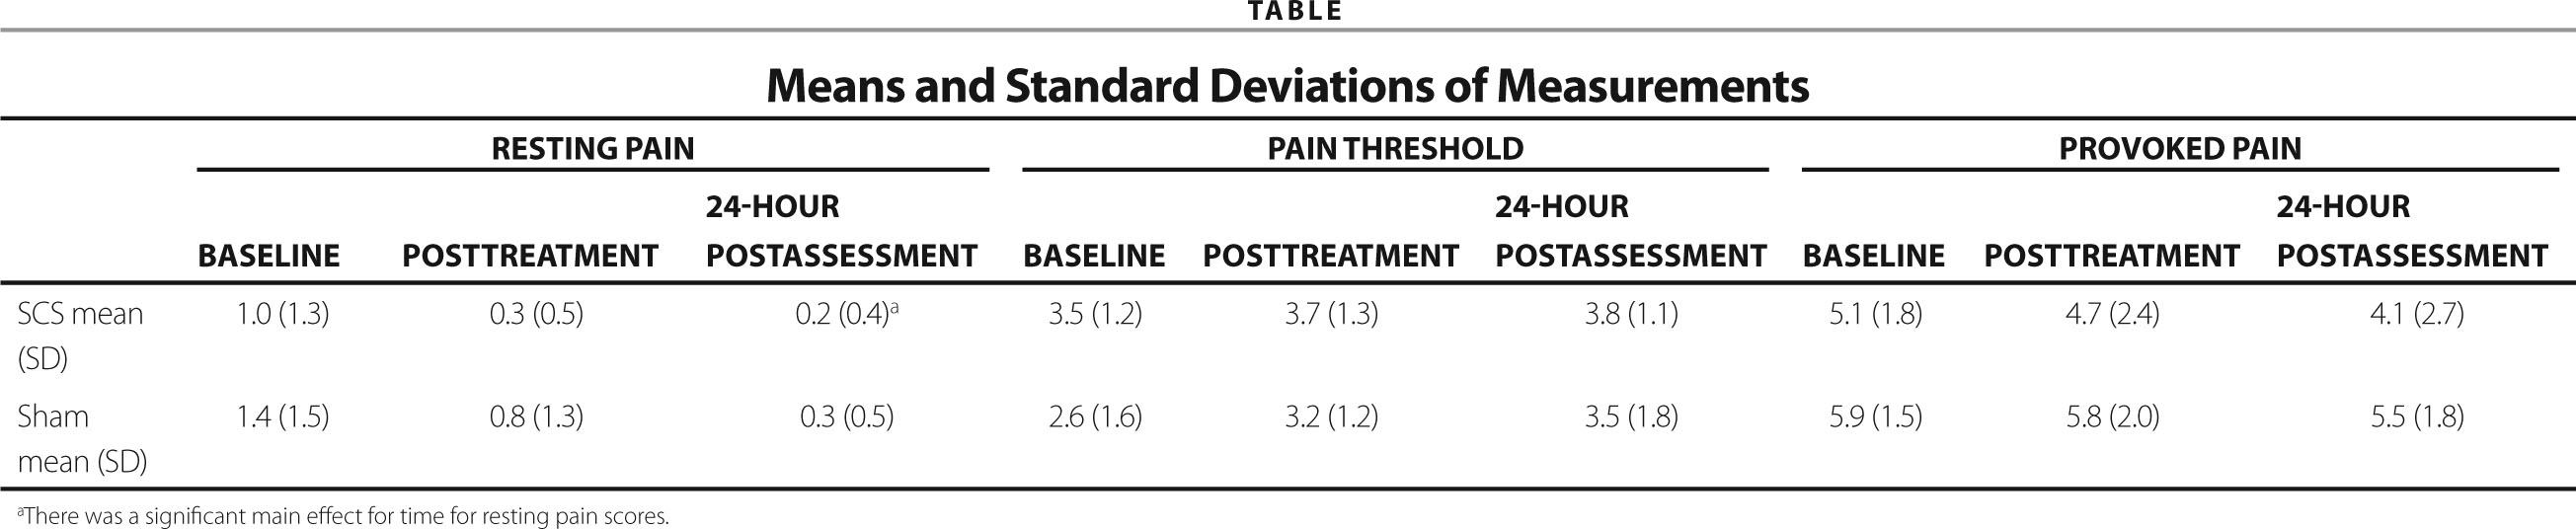 Means and Standard Deviations of Measurements